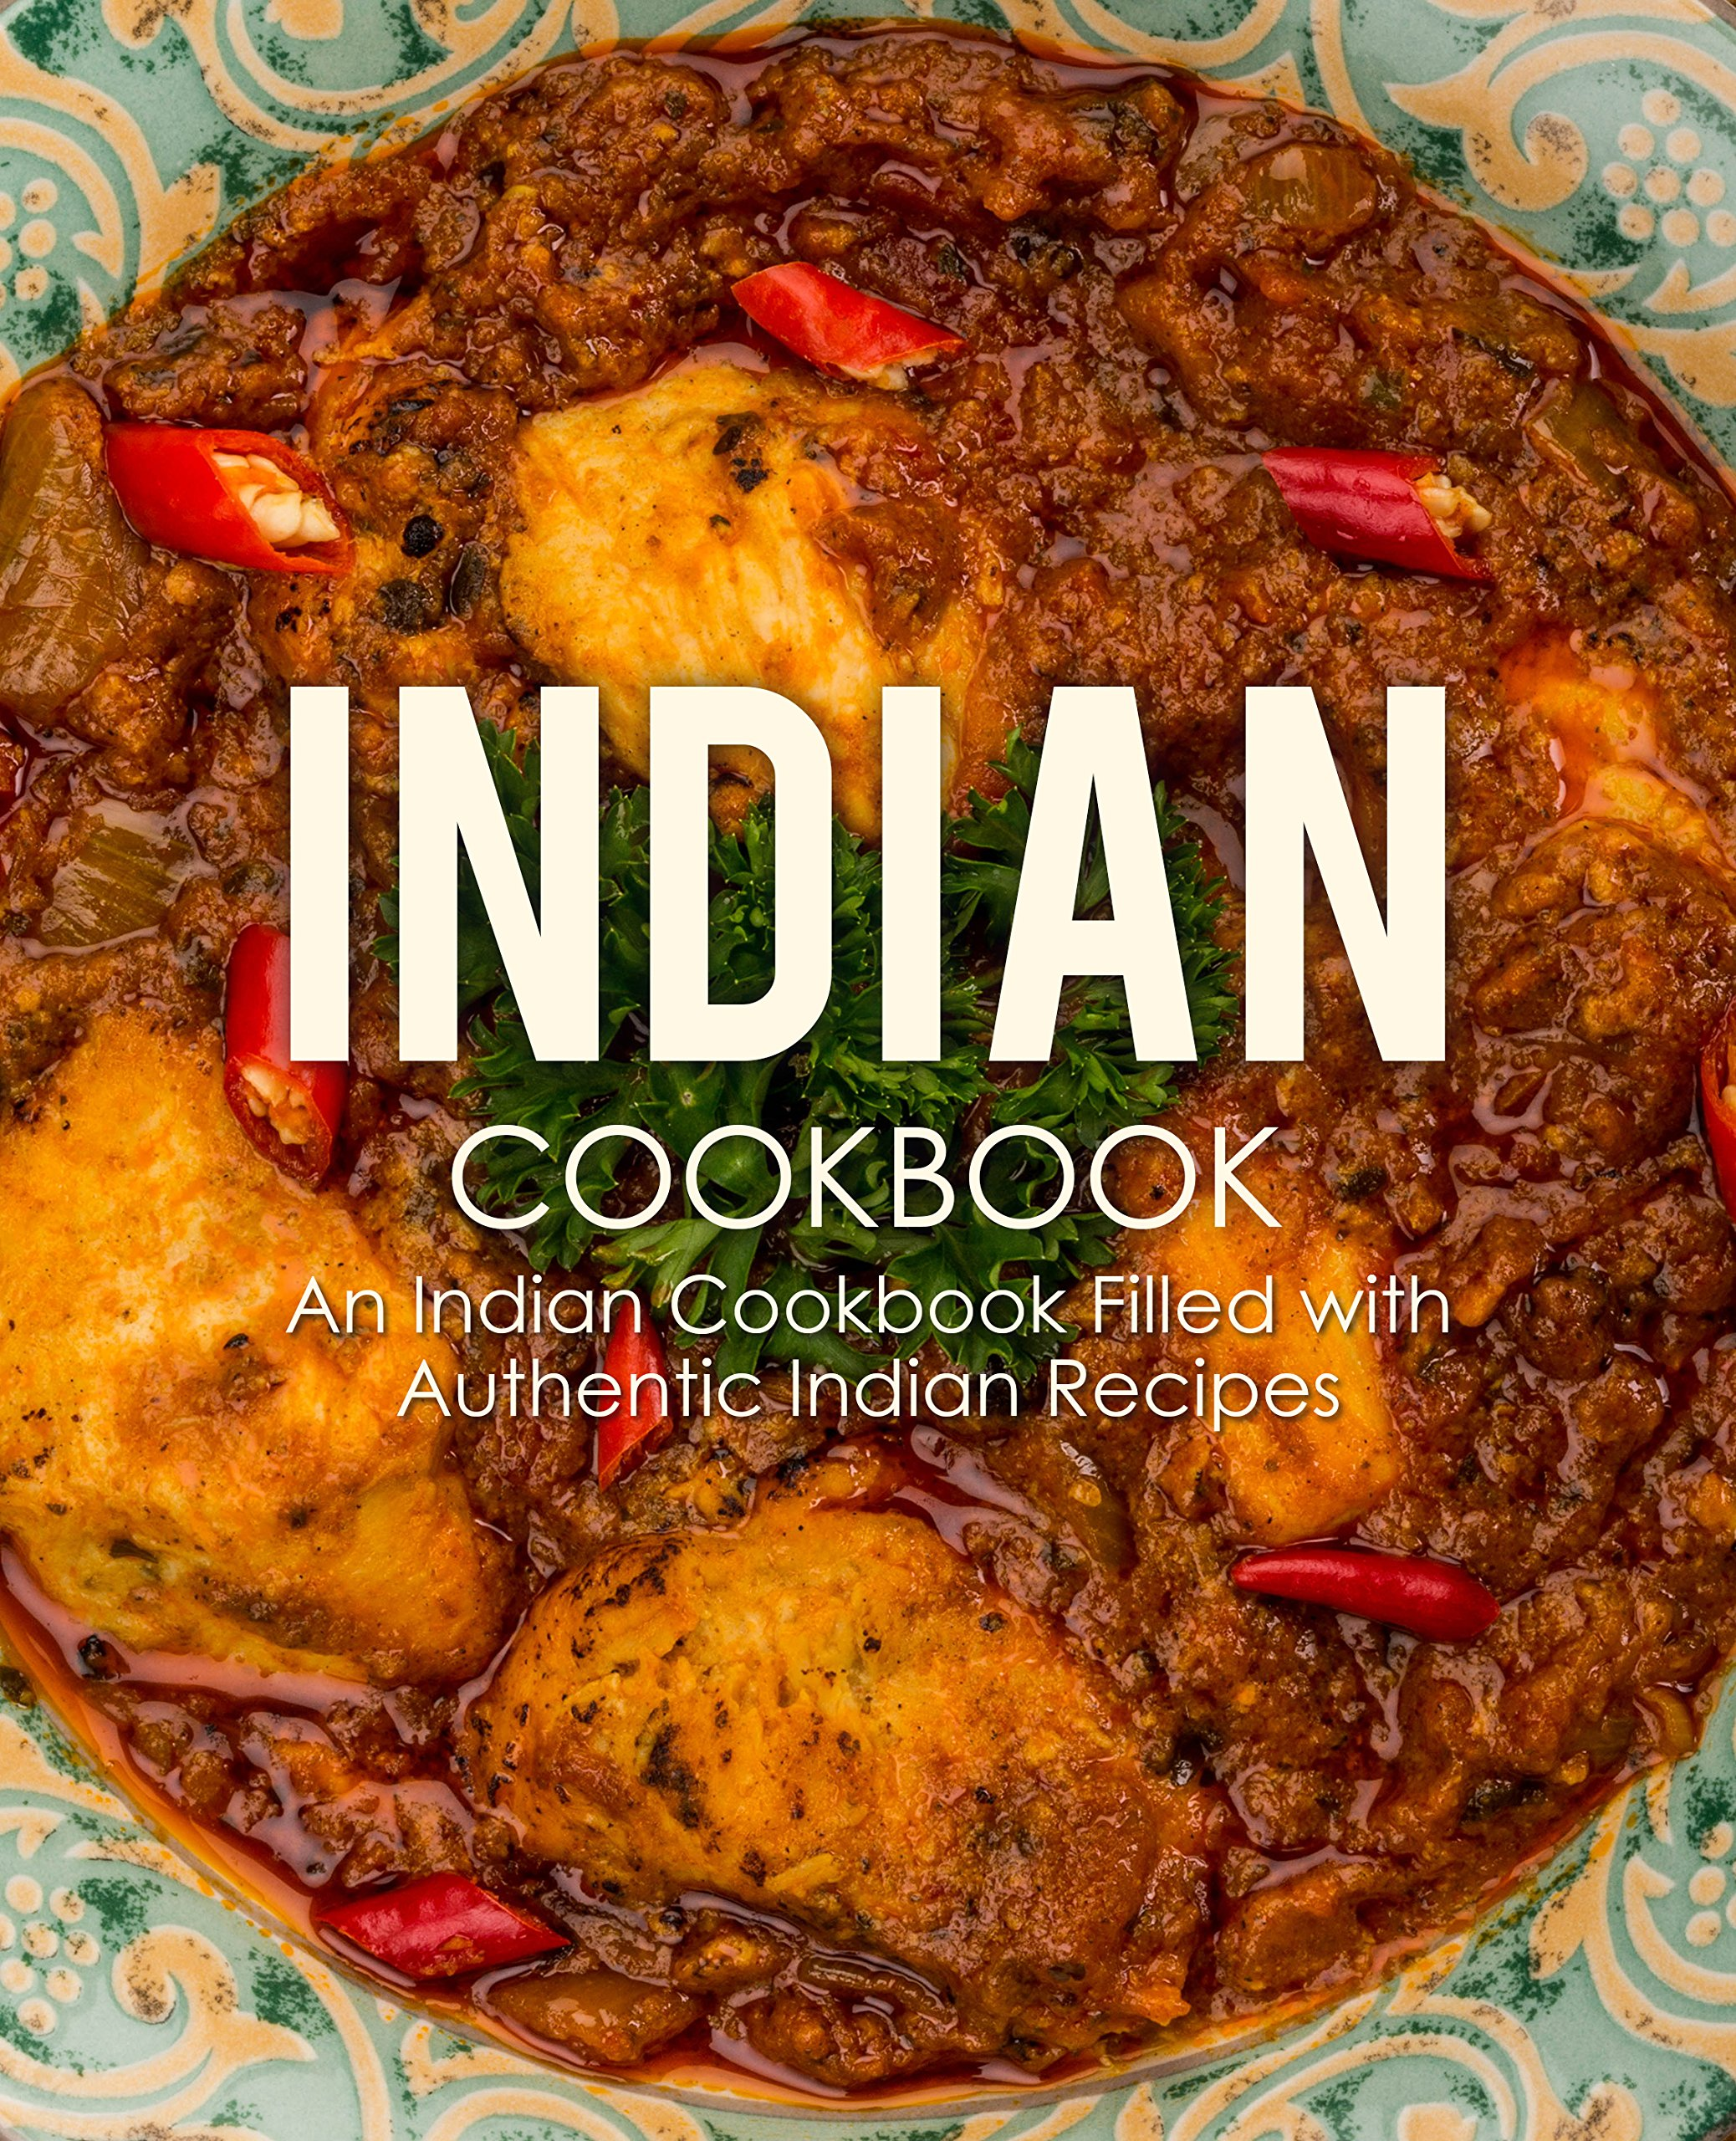 Indian Cookbook: An Indian Cookbook Filled with Authentic Indian Recipes 1